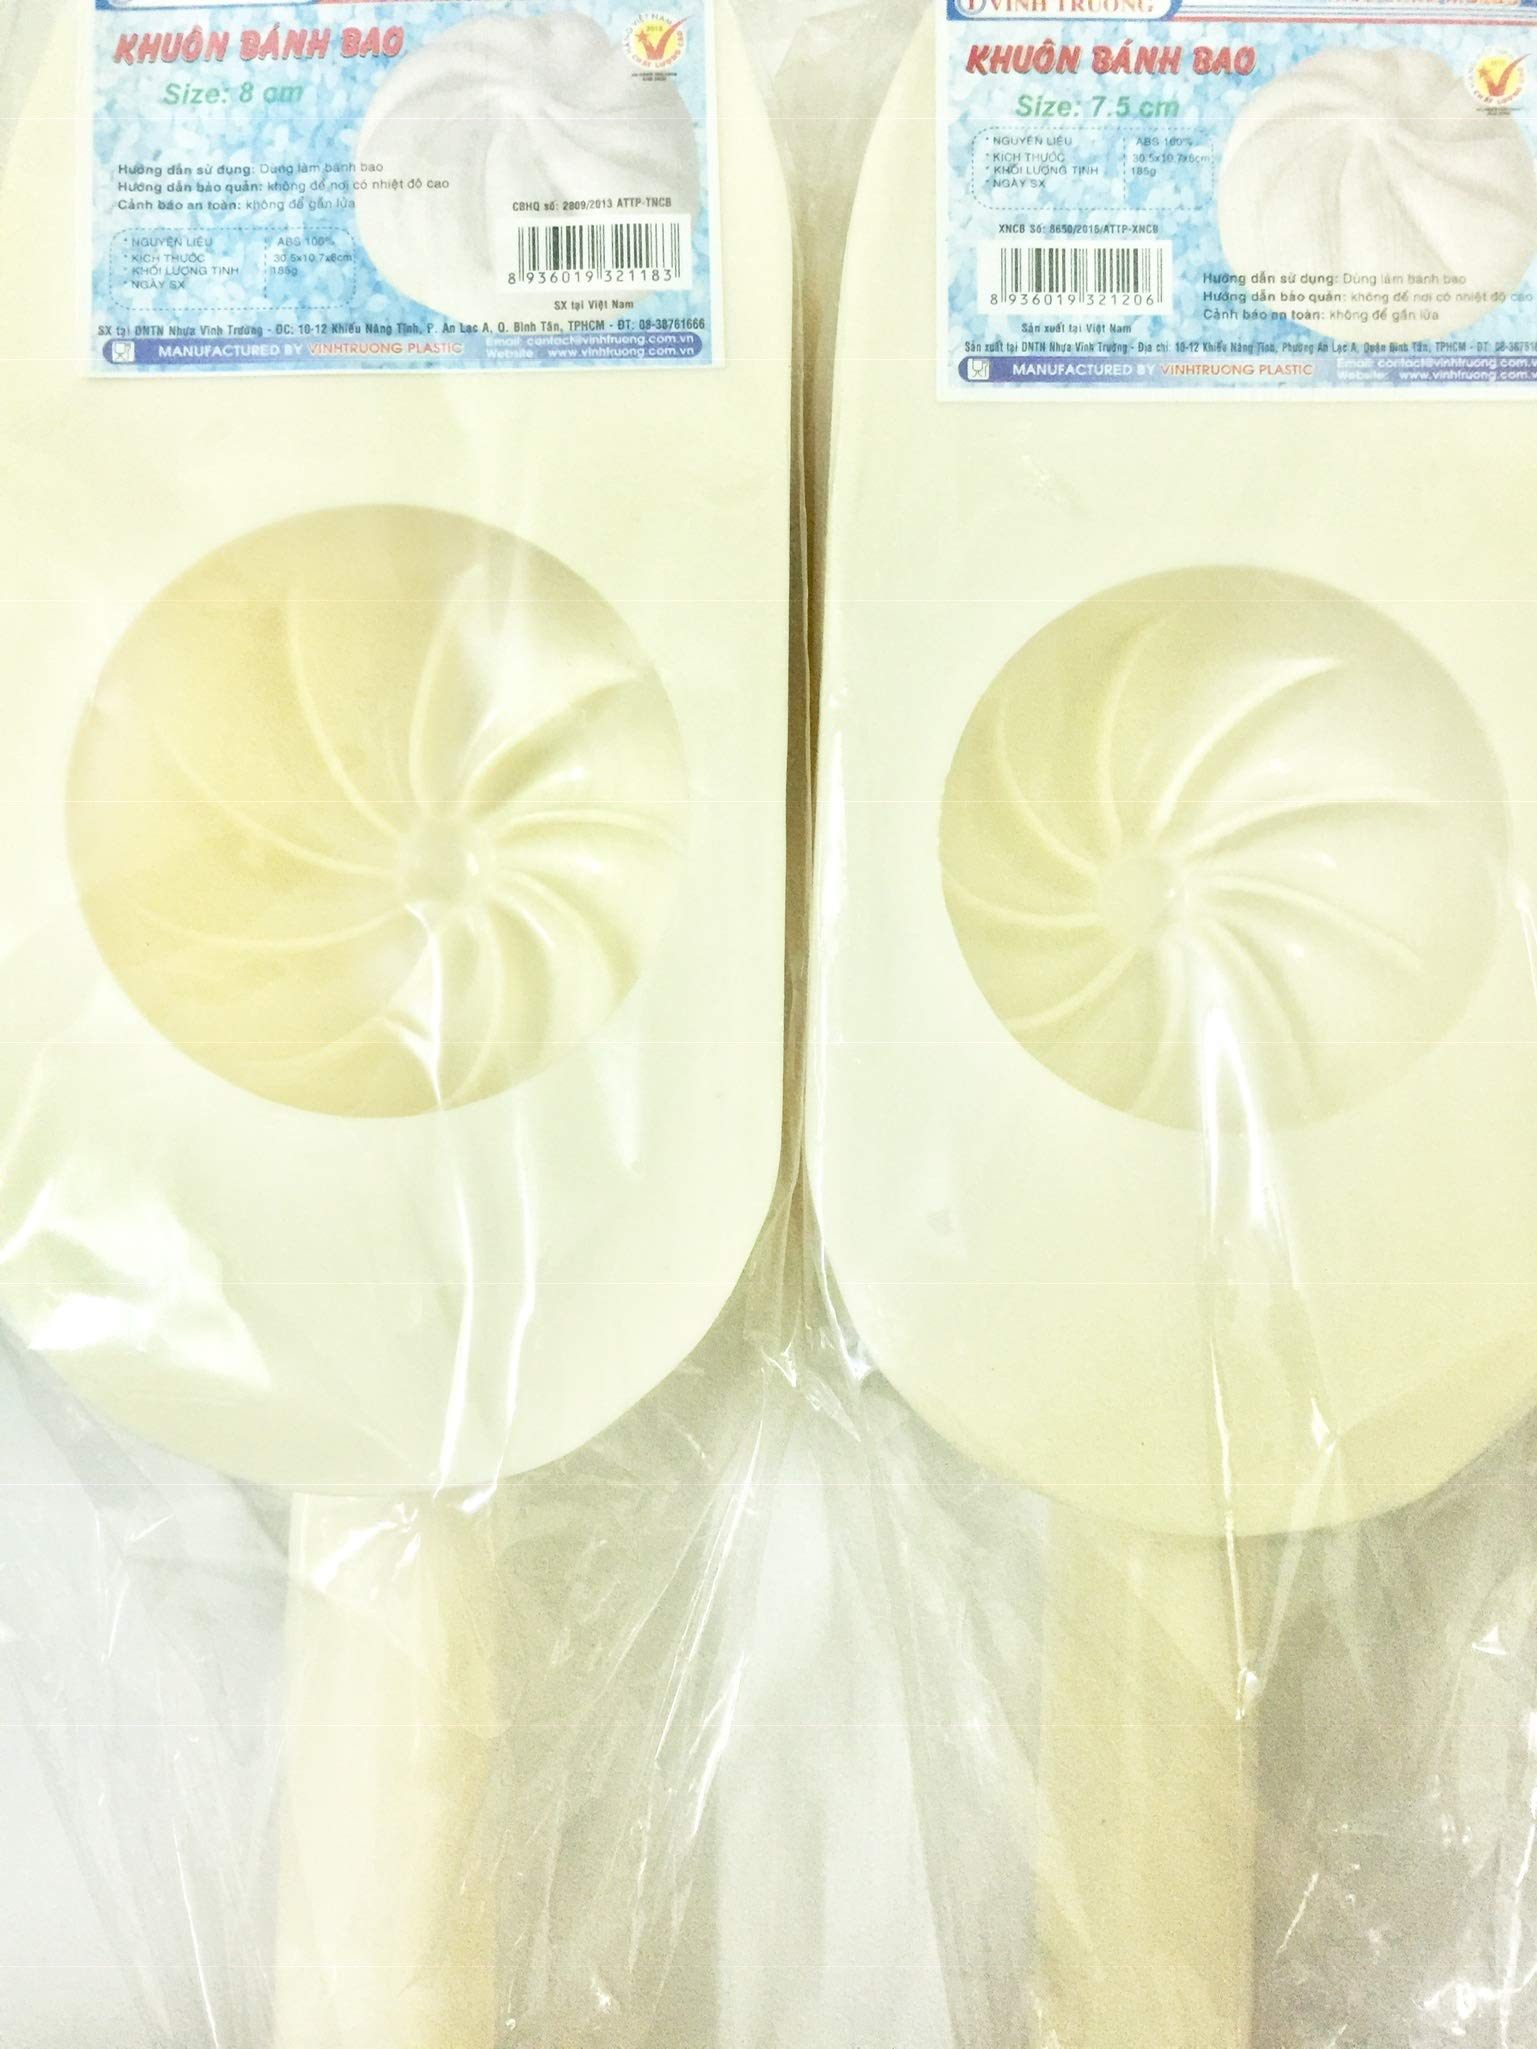 2 pcs x Large Steamed Bun Mold, Khuon Banh Bao (1 size 7,5 cm and 1 size 8 cm)